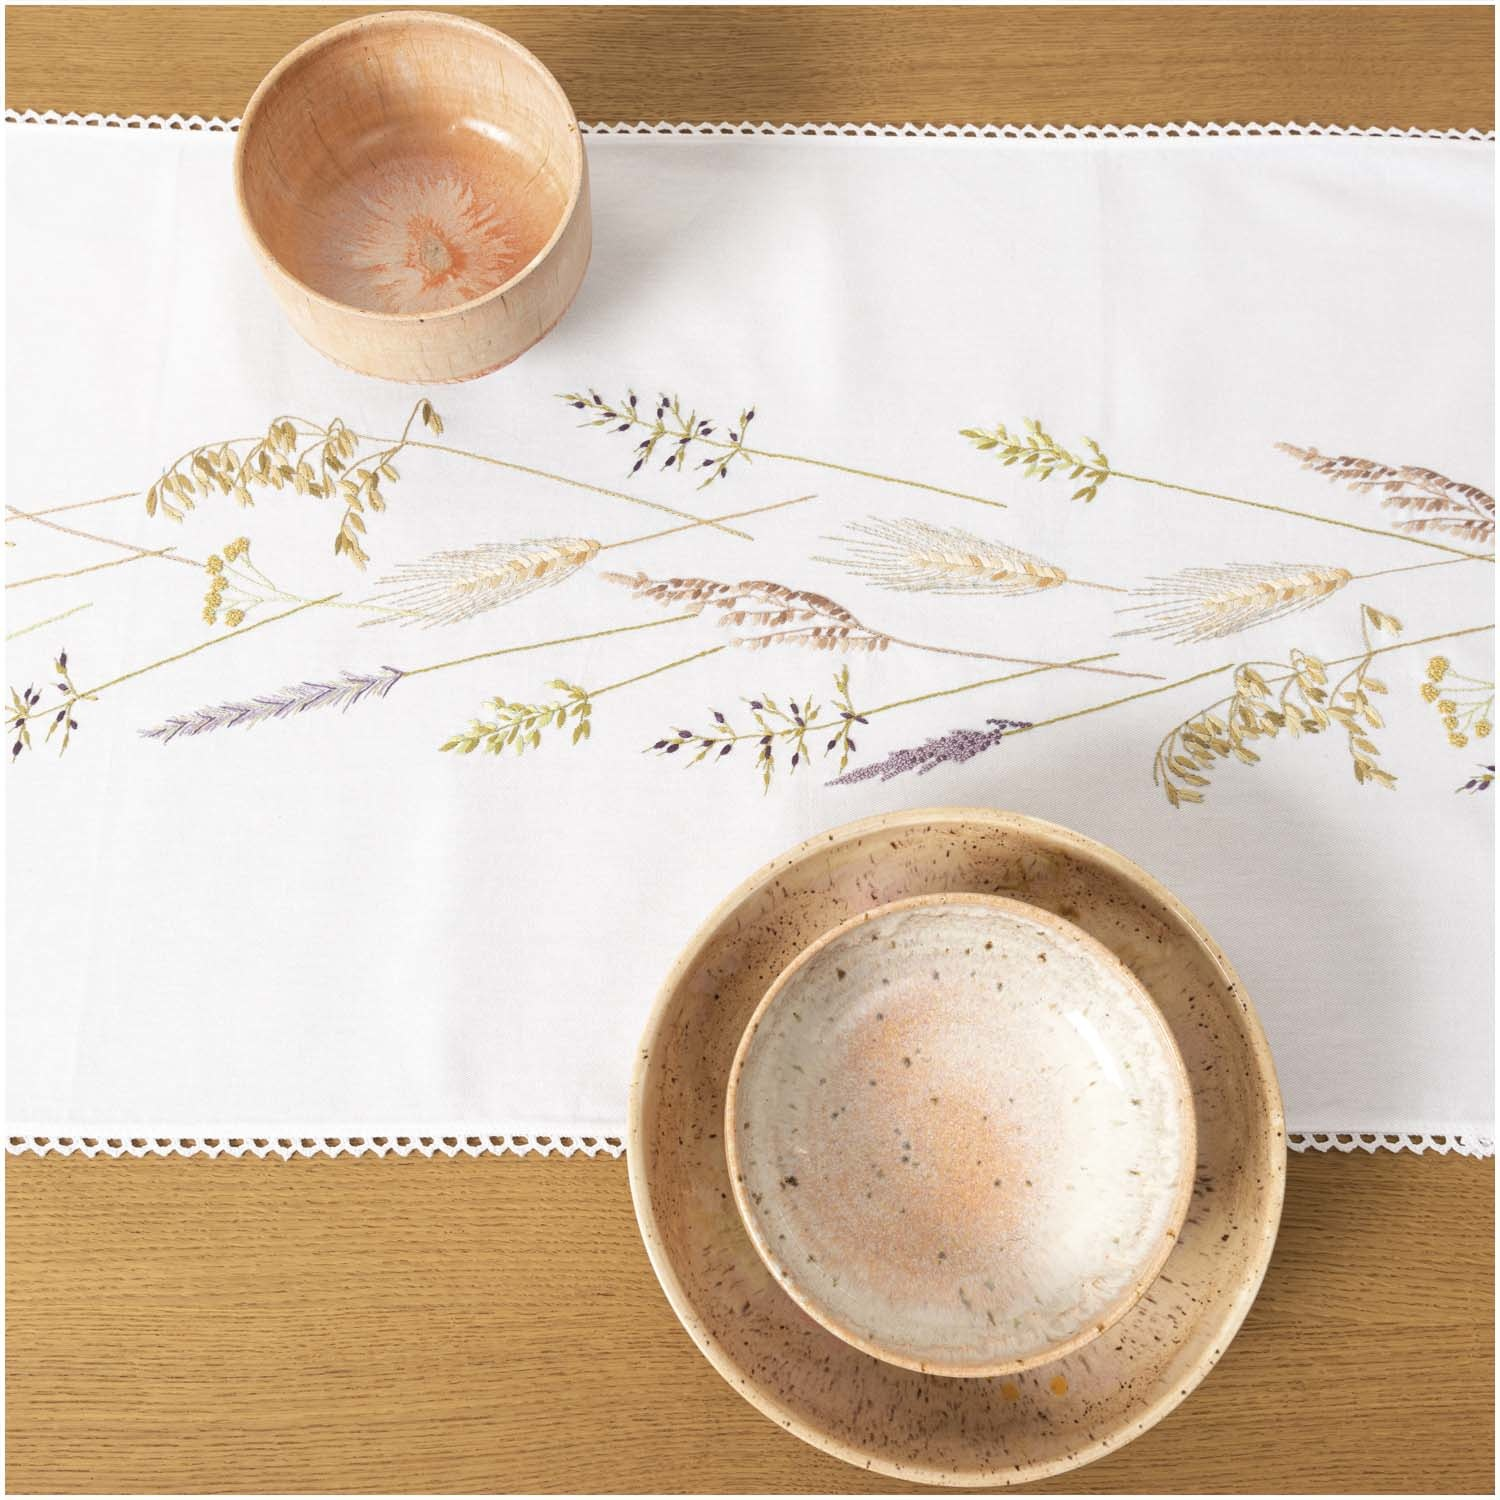 Rico NAY Embroidery kit runner grass wreath, 40x150cm, traced, 100% COTTON